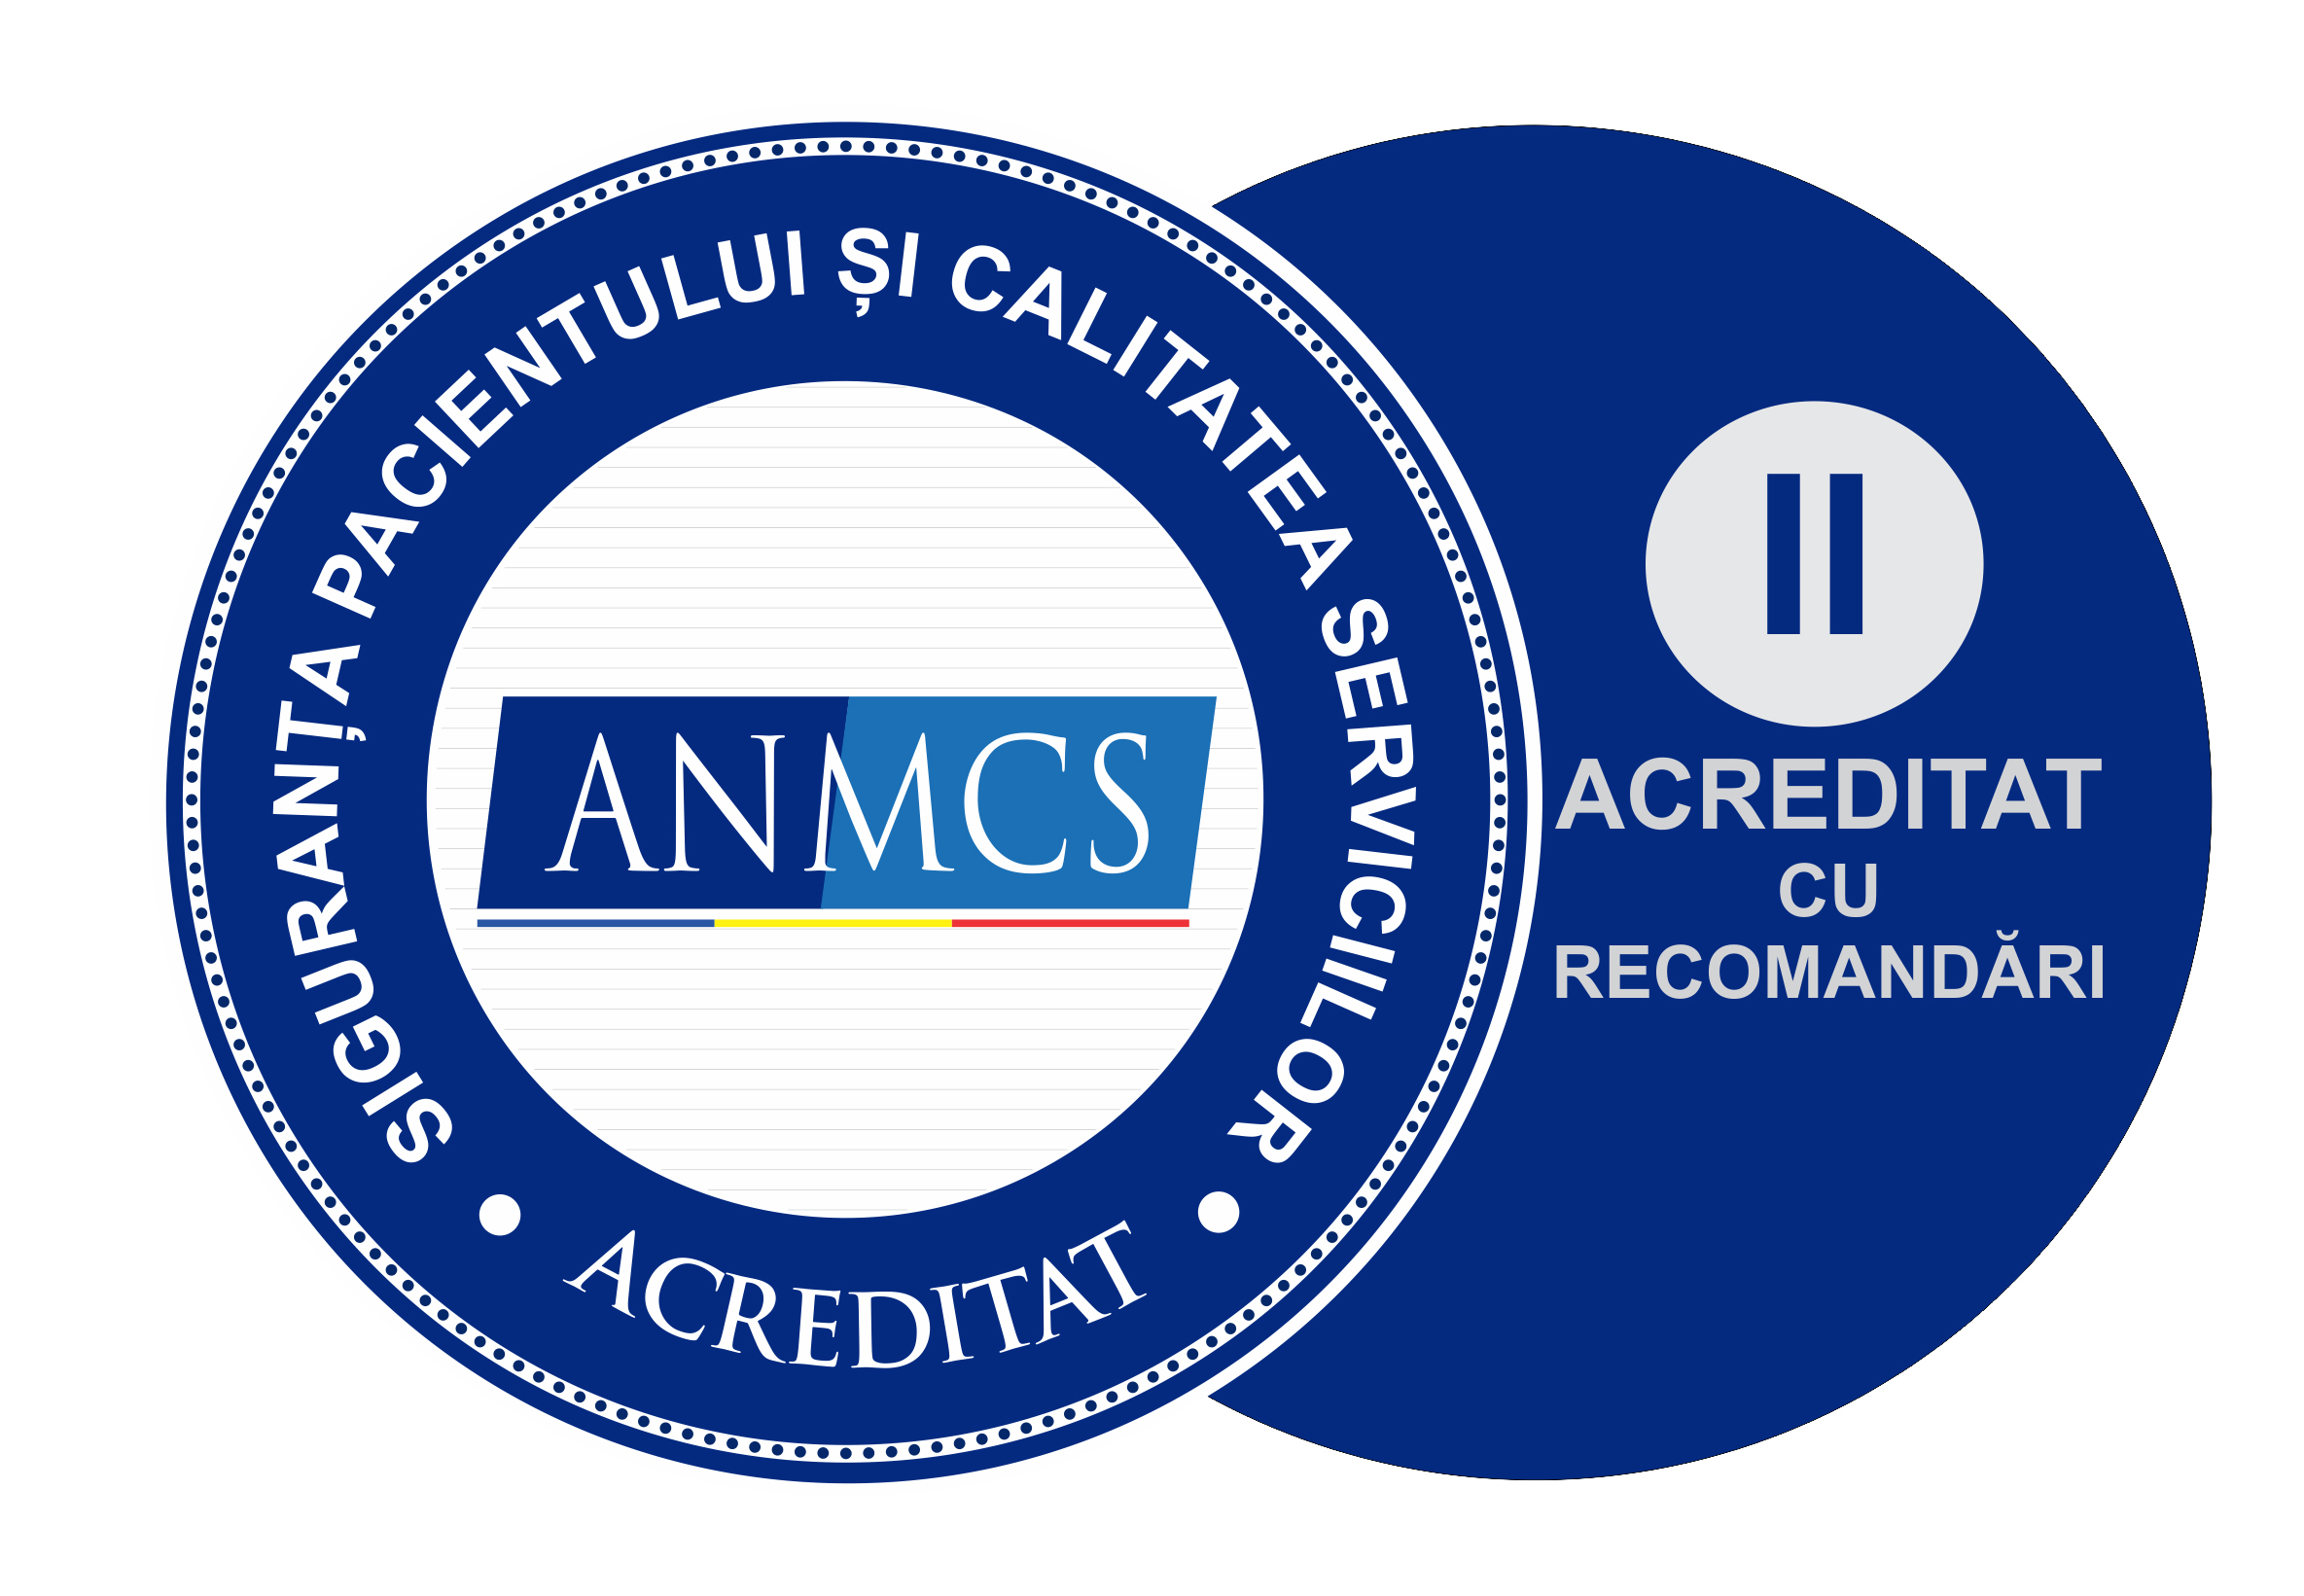 ANMCS Unitate aflata in proces de acreditare